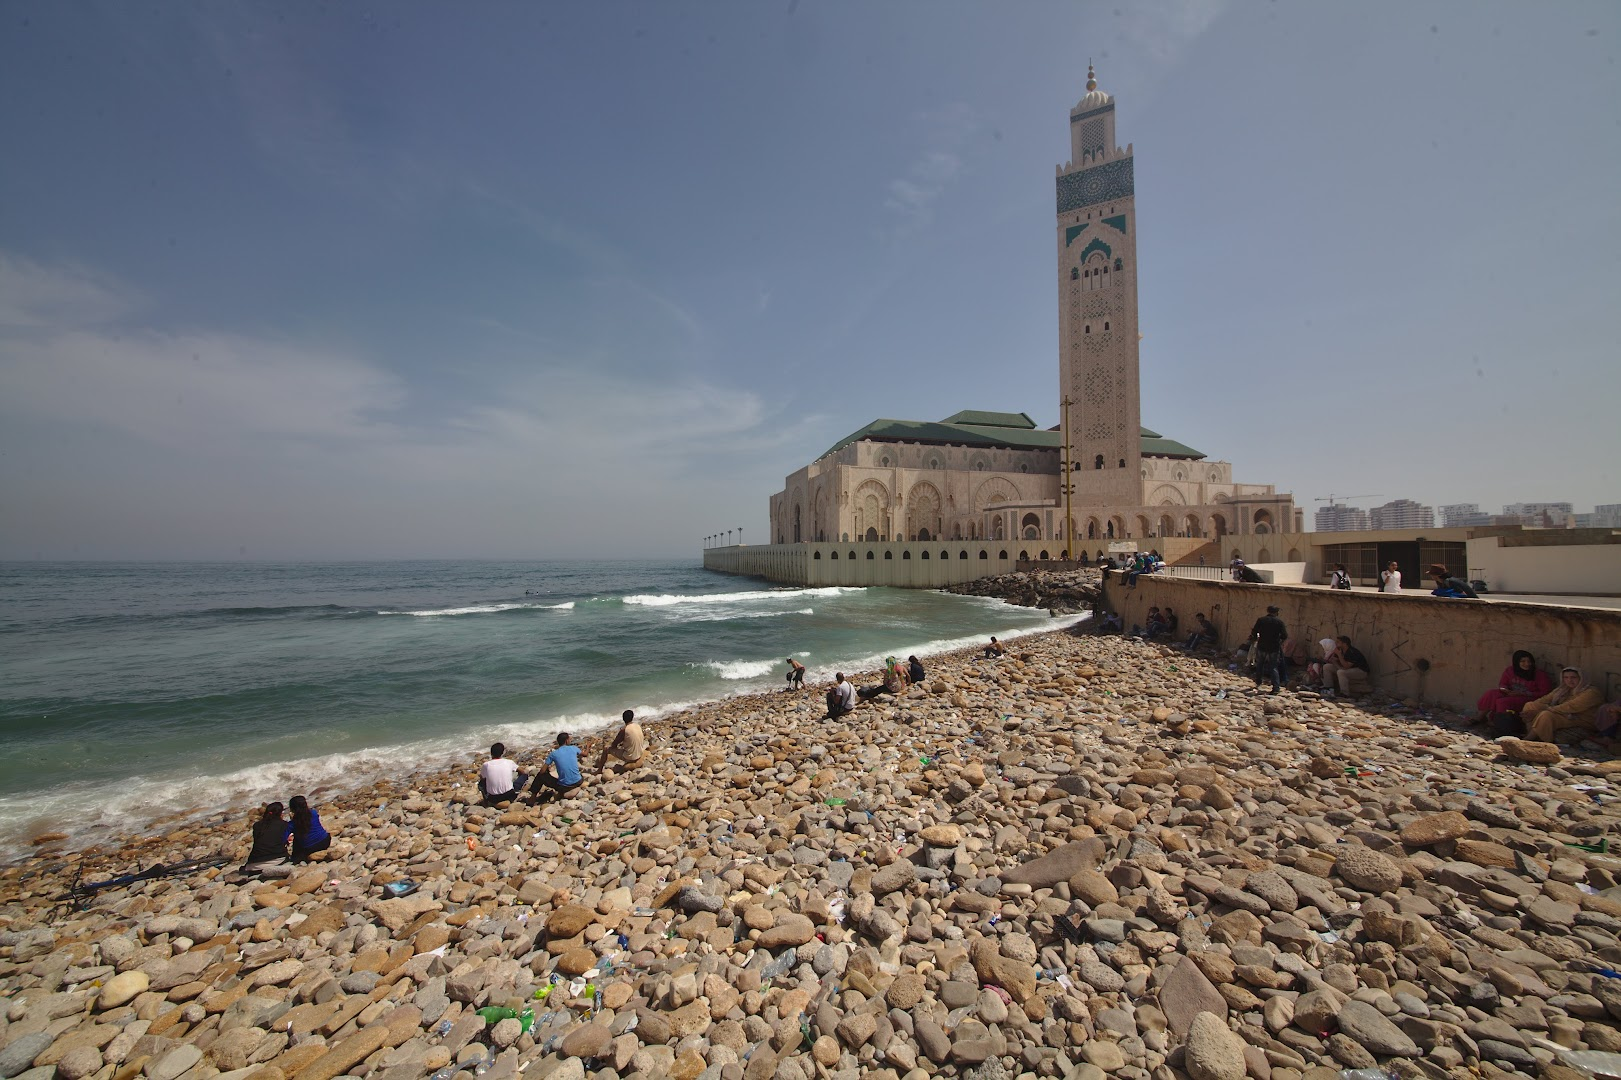 The second largest mosque, after Mecca